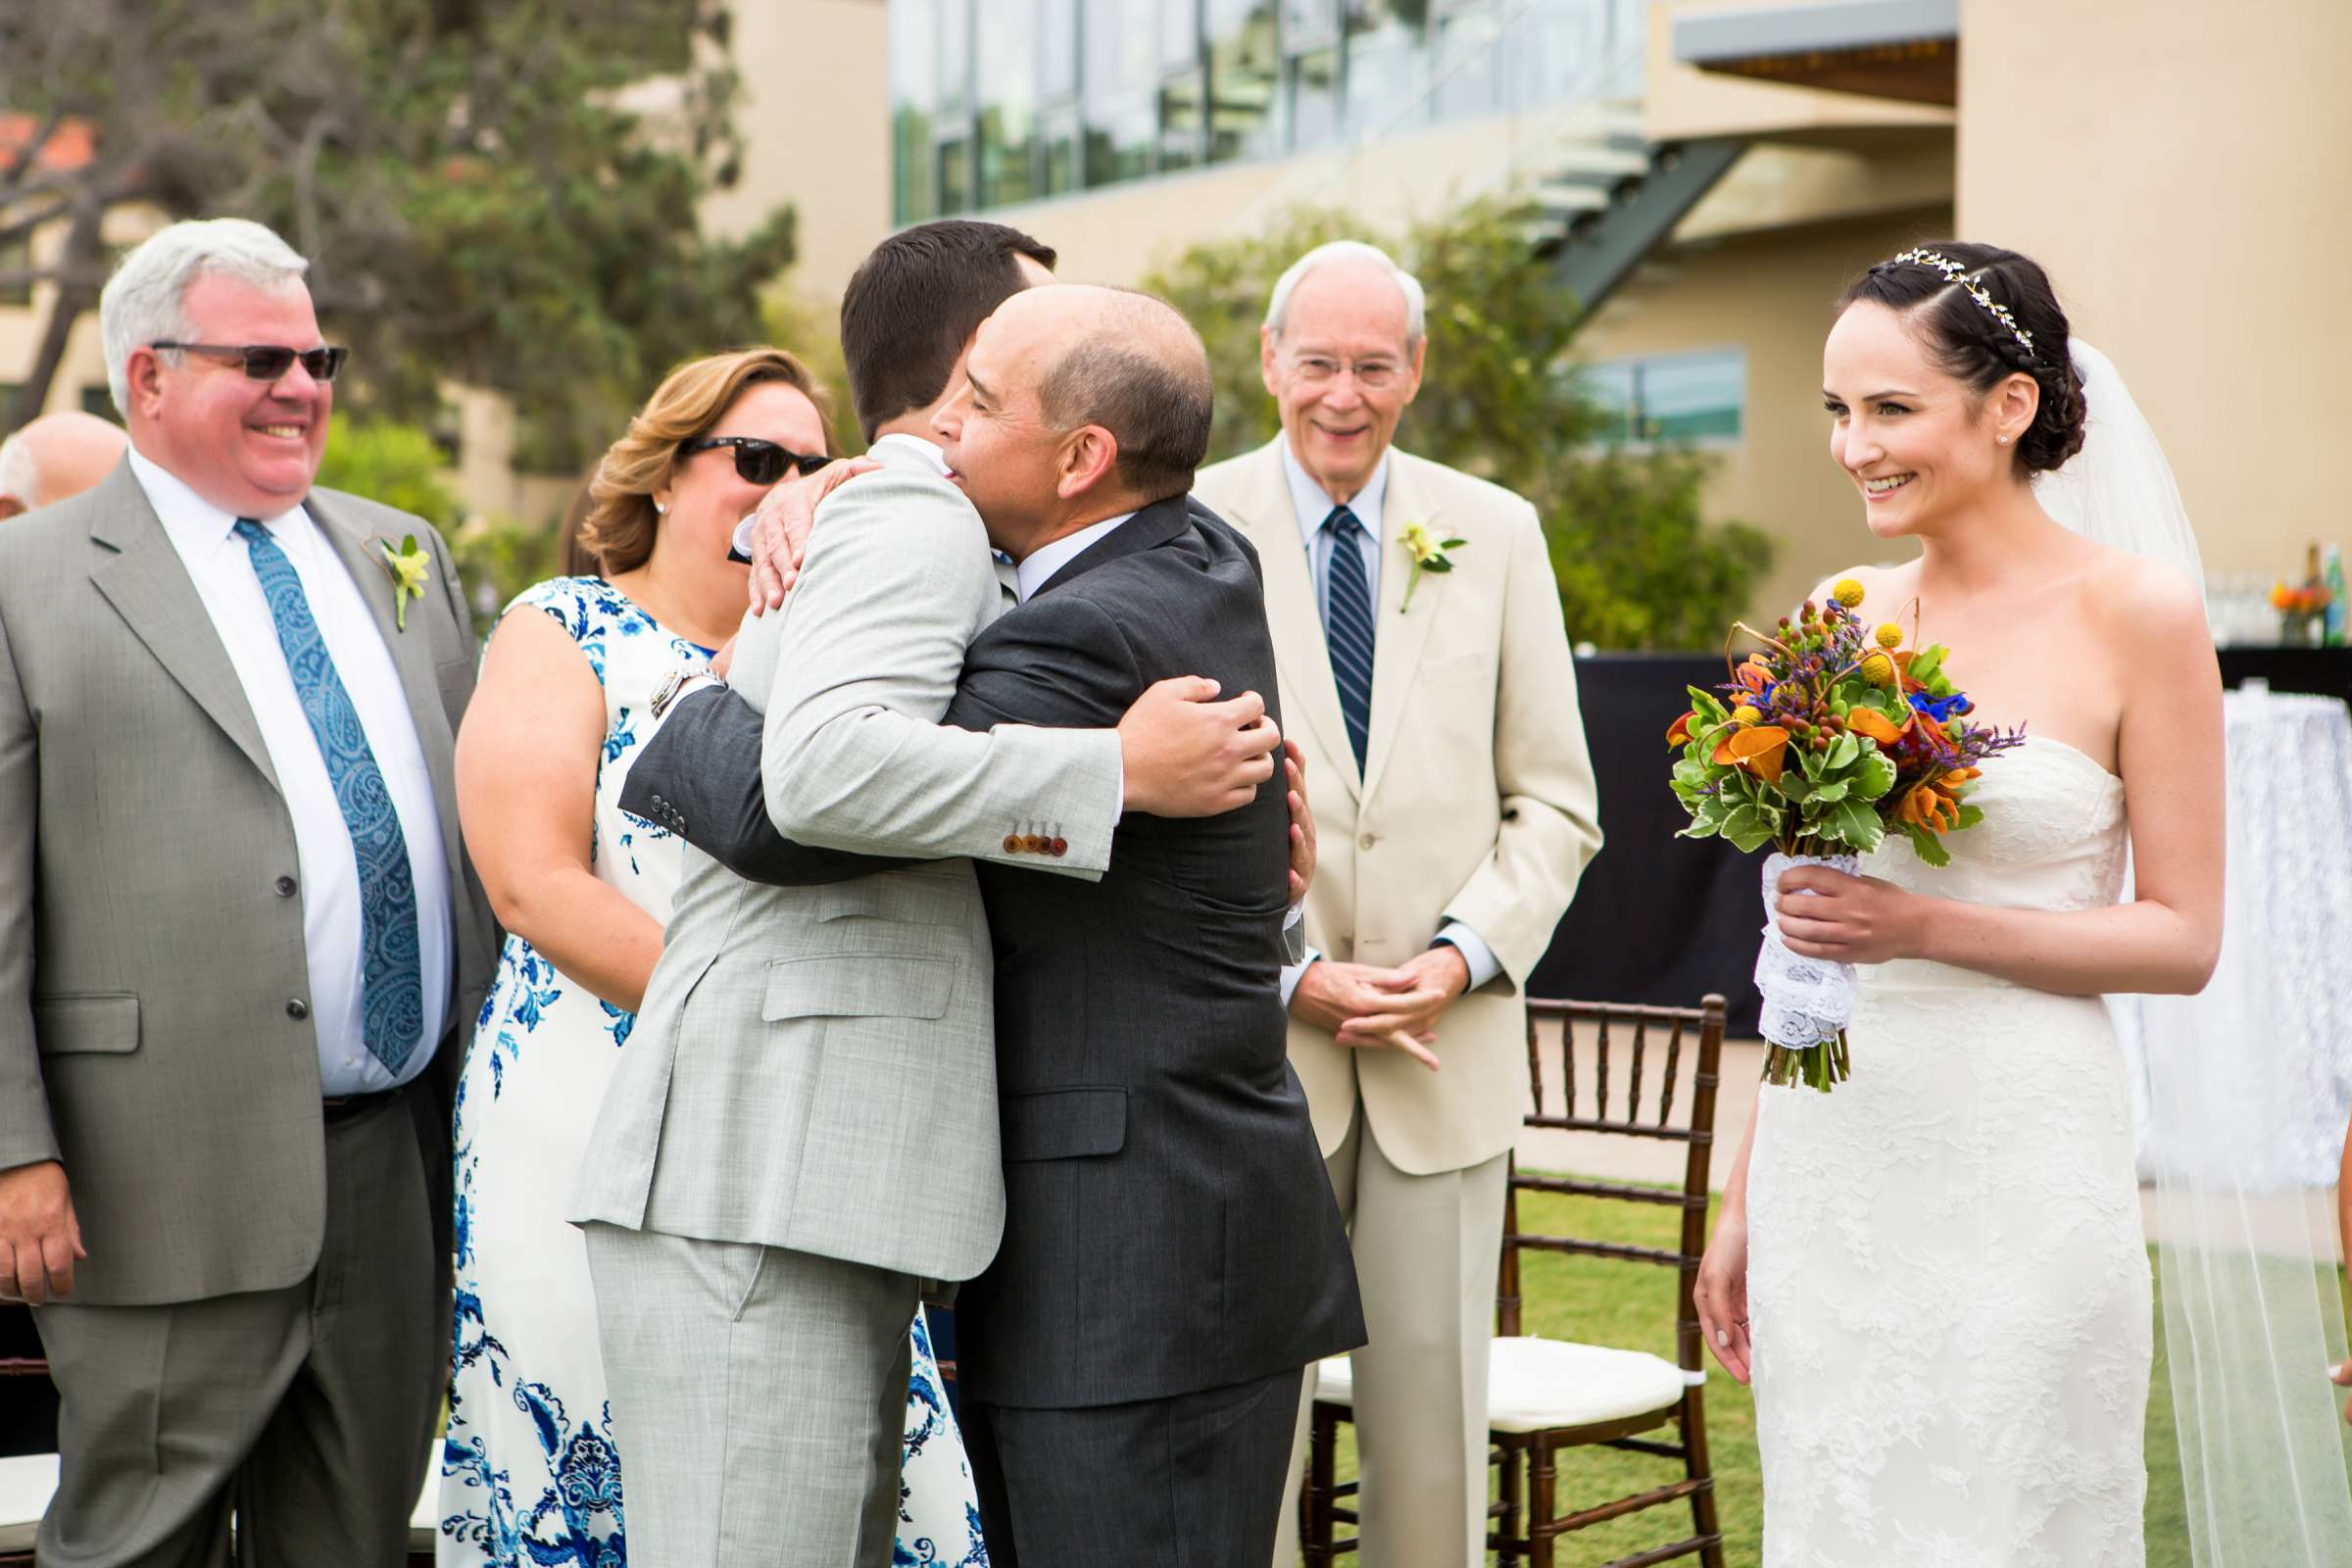 Scripps Seaside Forum Wedding coordinated by Francine Ribeau Events, Shaina and Christopher Wedding Photo #23 by True Photography